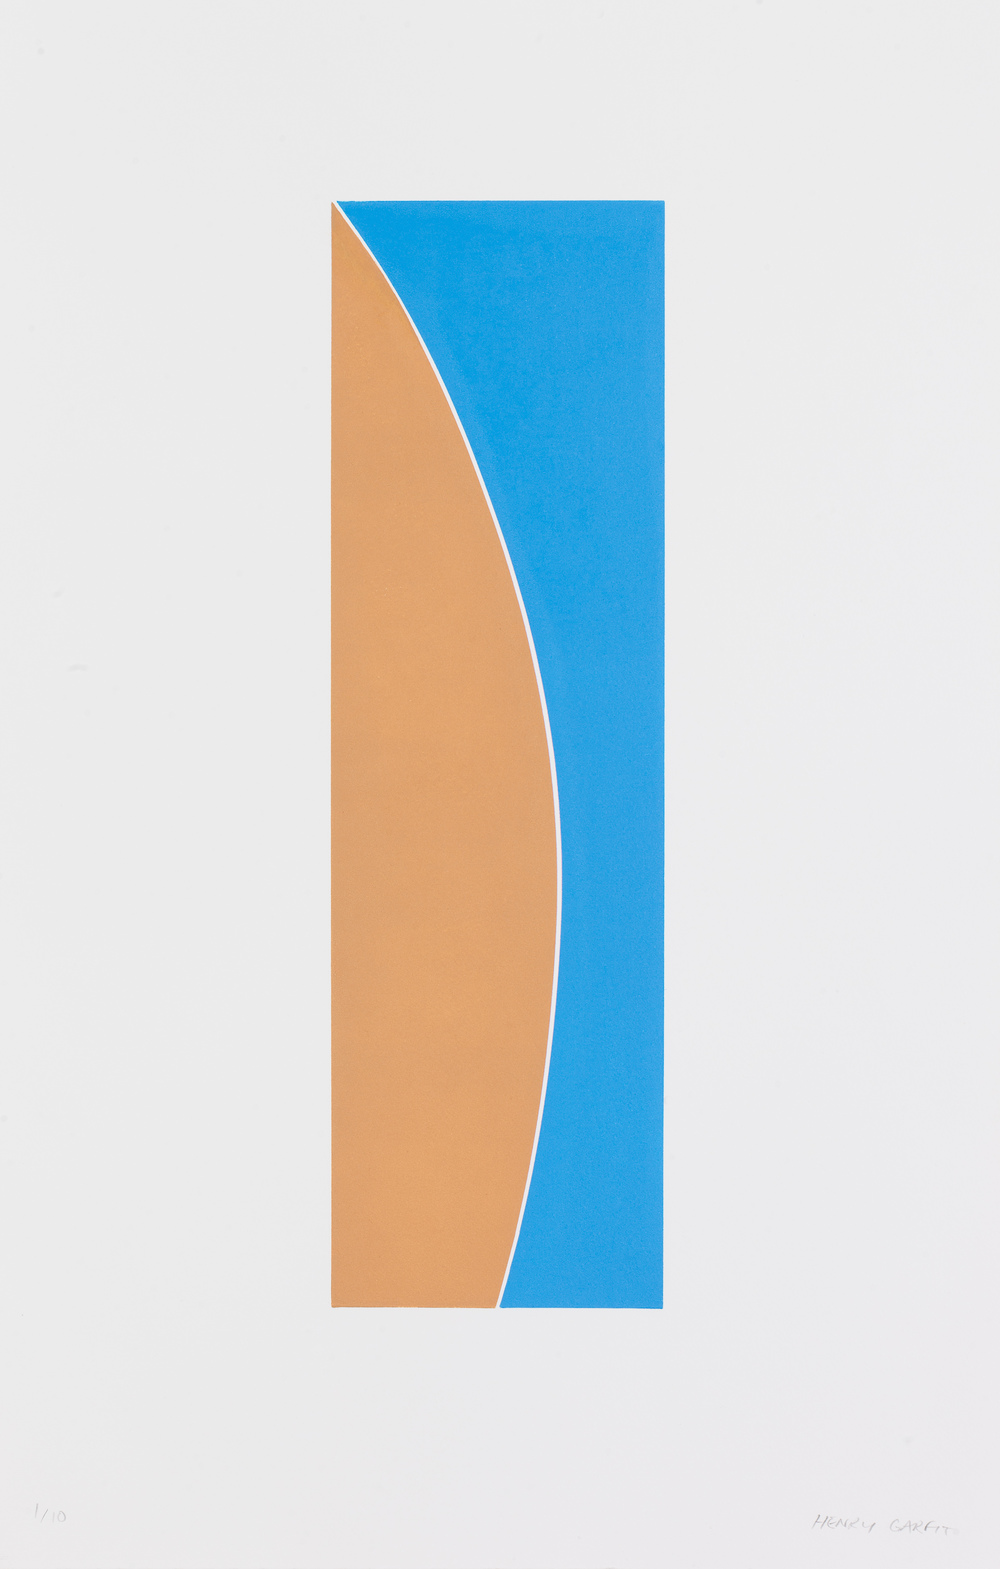 Henry Garfit   Ochre and Mid Blue Curve   Relief print with industrial rubber   73cm x 46cm   Edition of 10   £550 framed